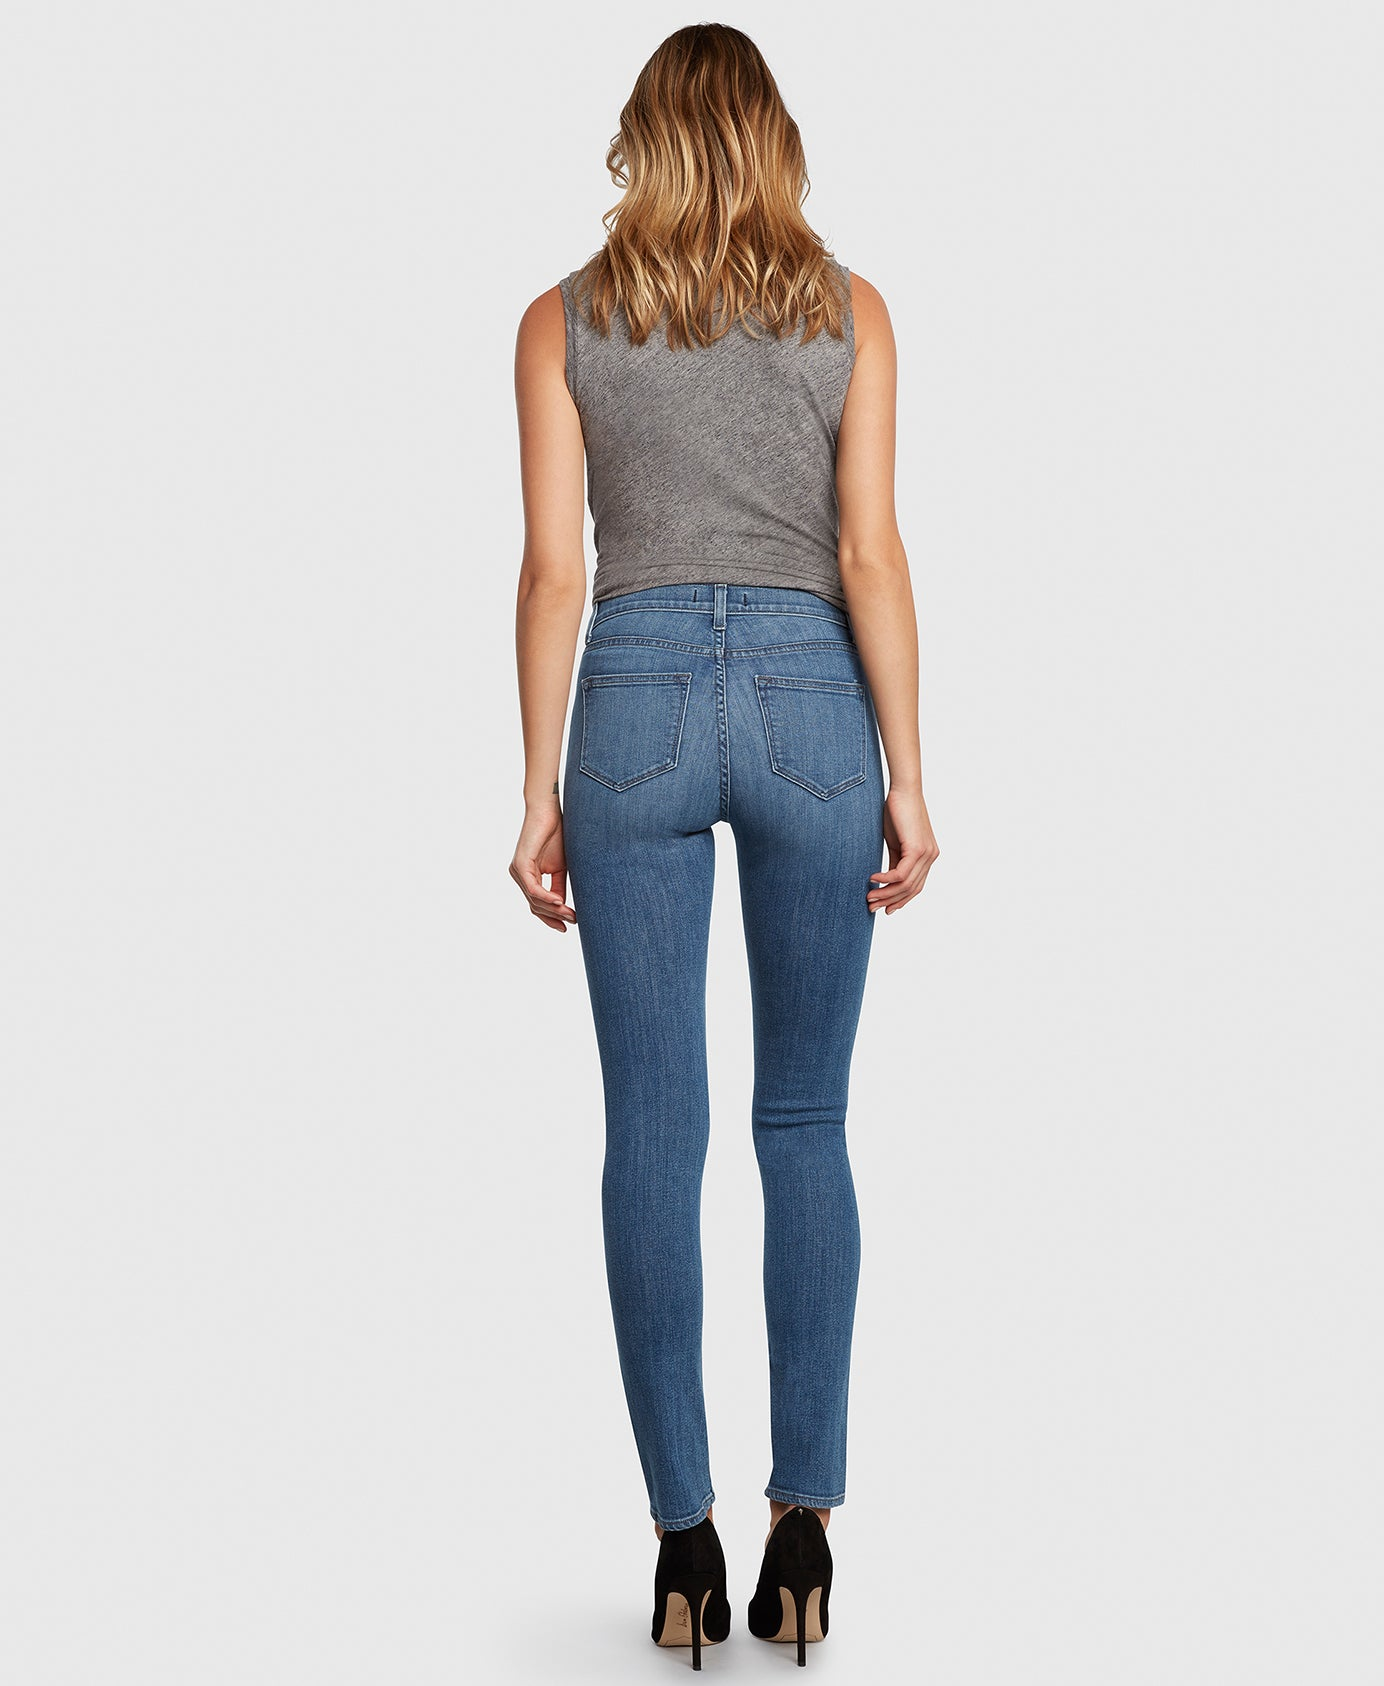 Principle BEAUTY in Summerland Skinny Jeans back